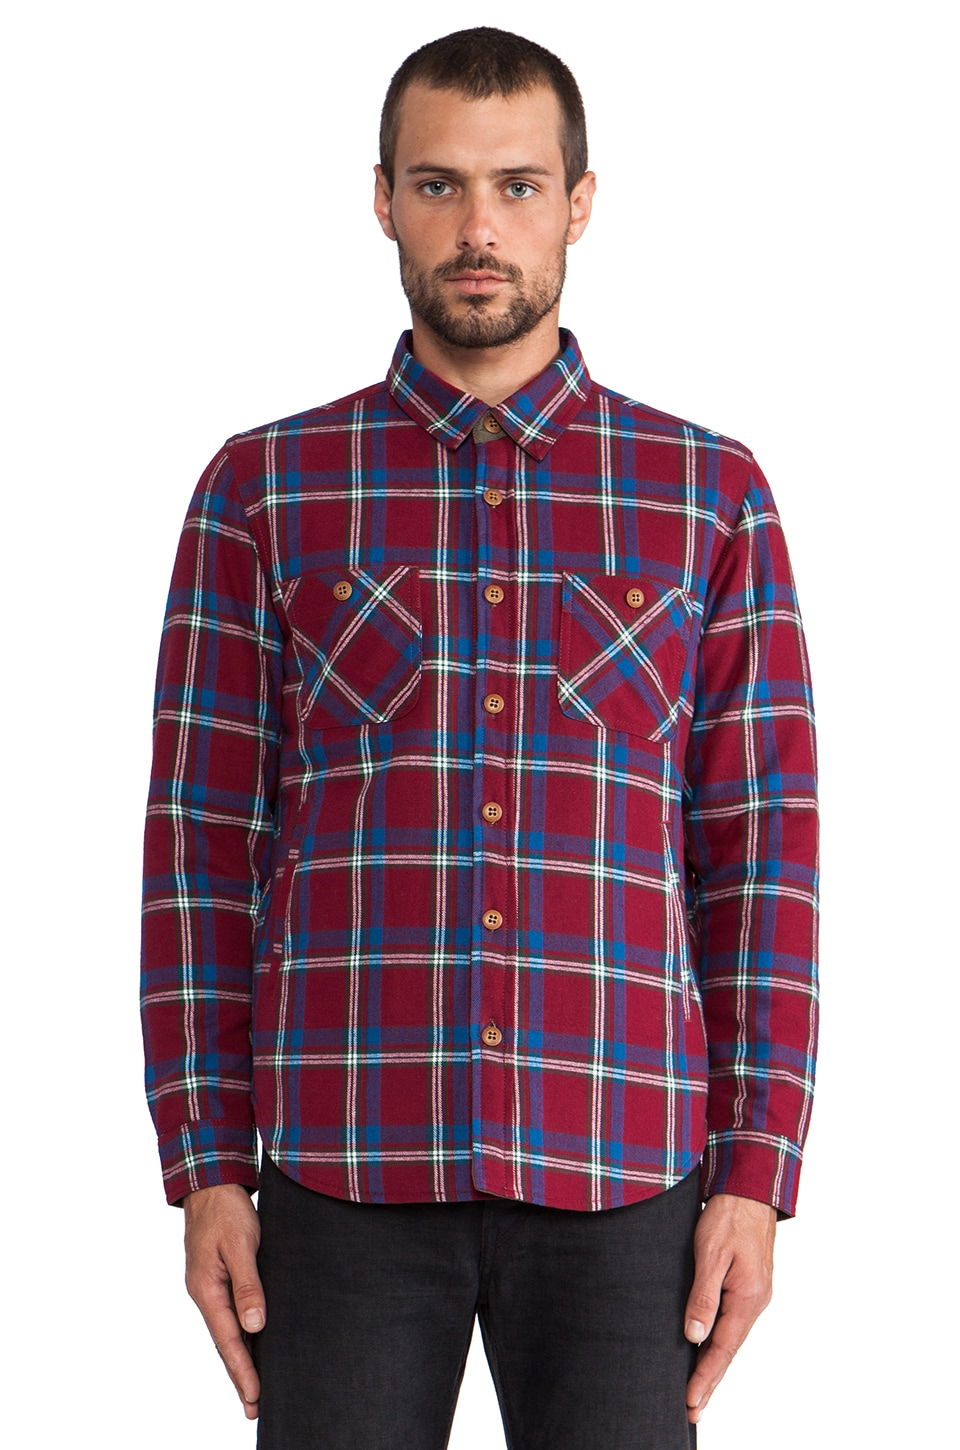 OURS Ty-Po Shirt Jacket in Burgundy Plaid